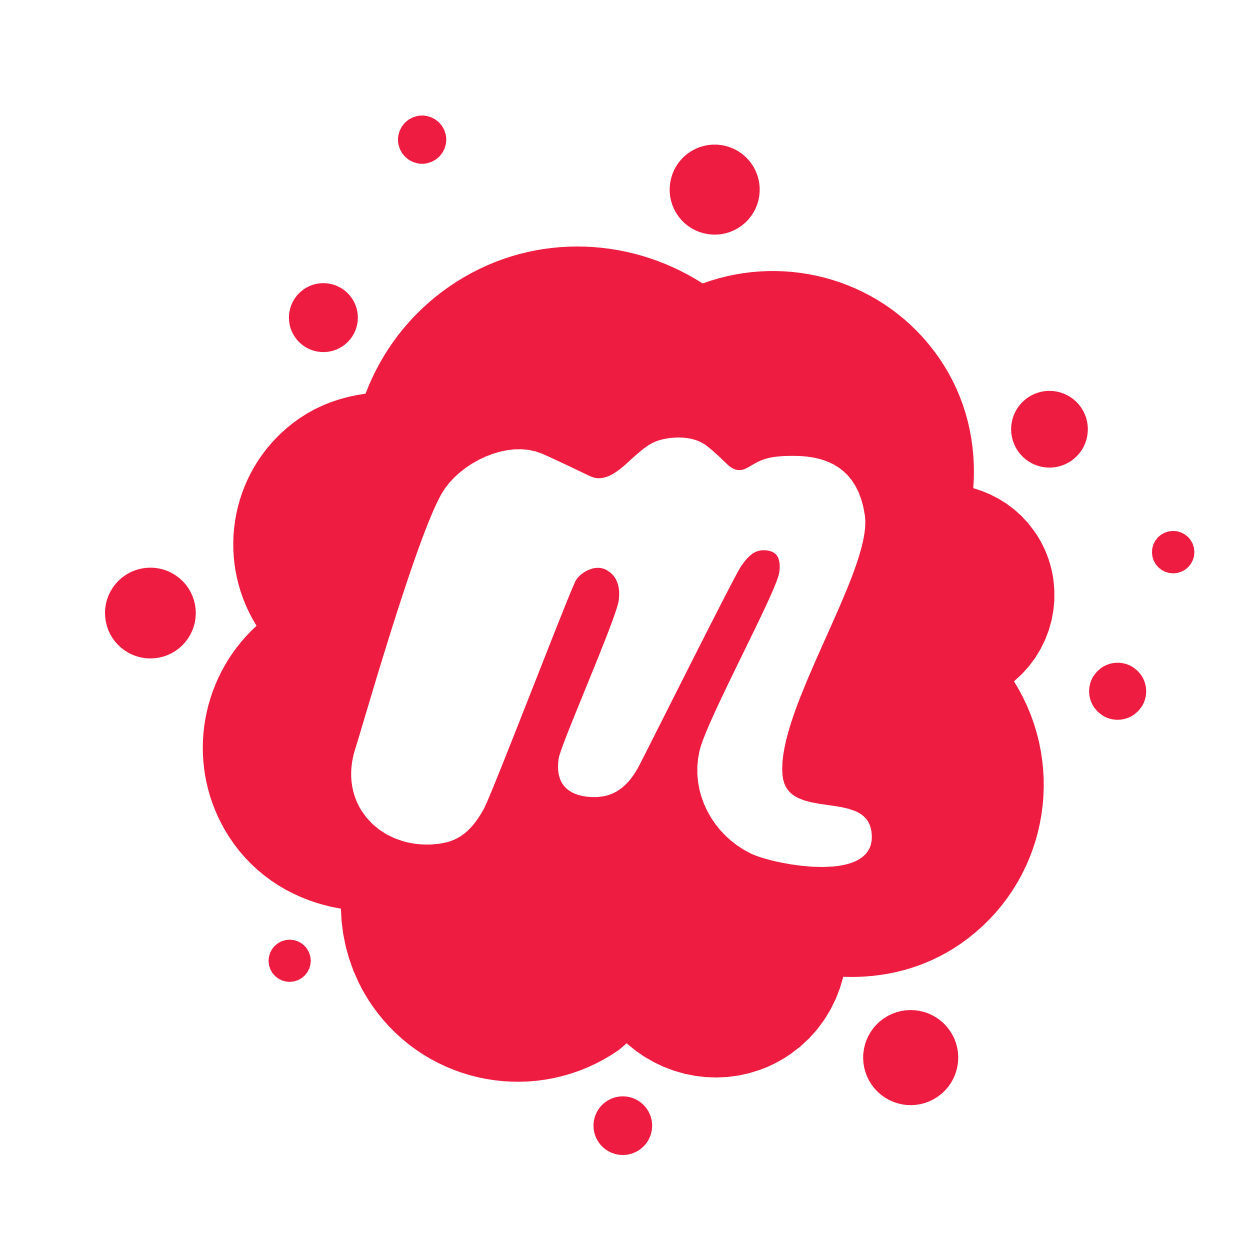 Join this event on MeetUp